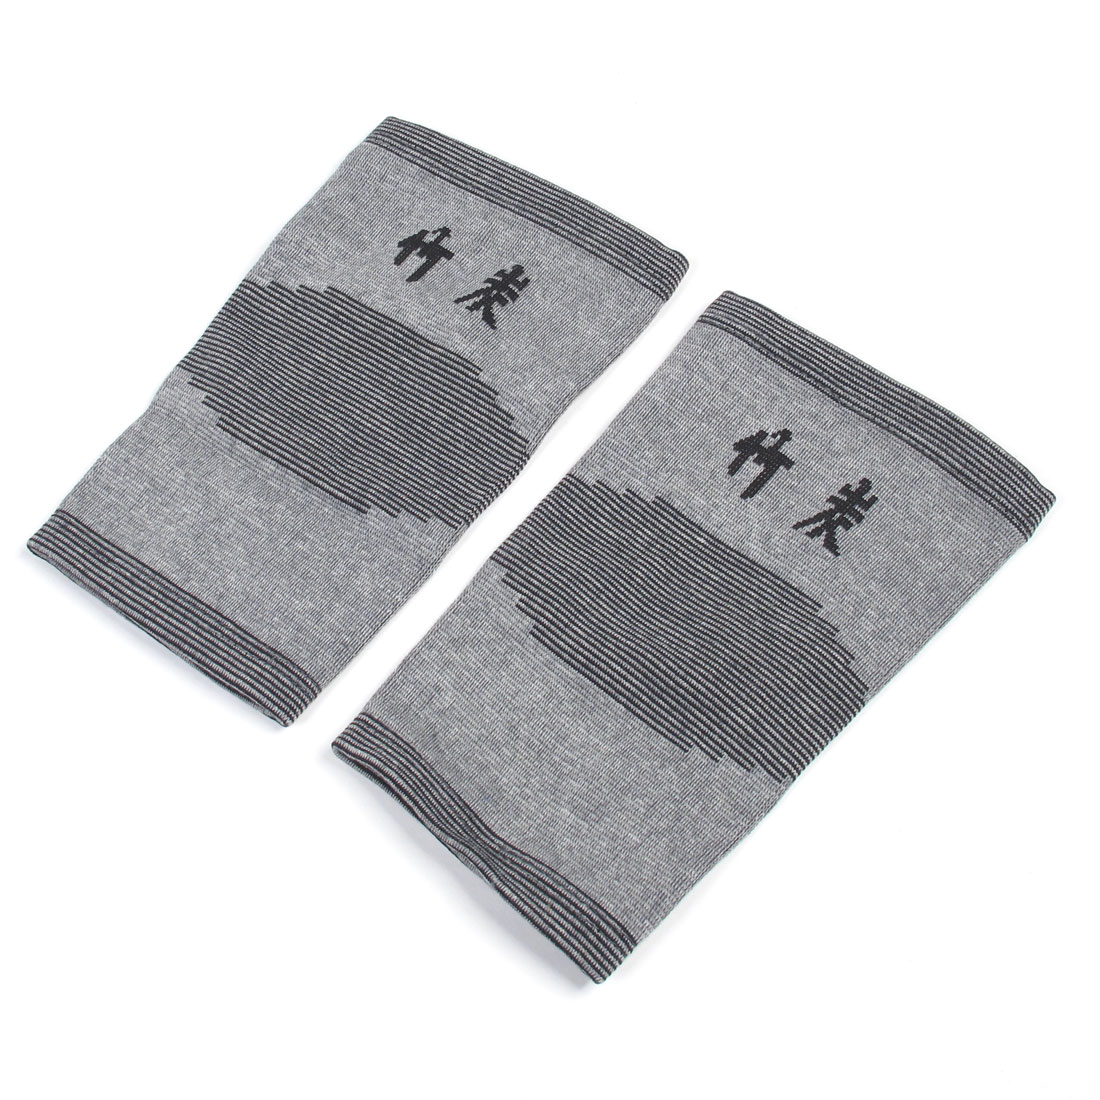 Pair Gray Black Strips Printed Pullover Design Stretchy Knee Support Protector